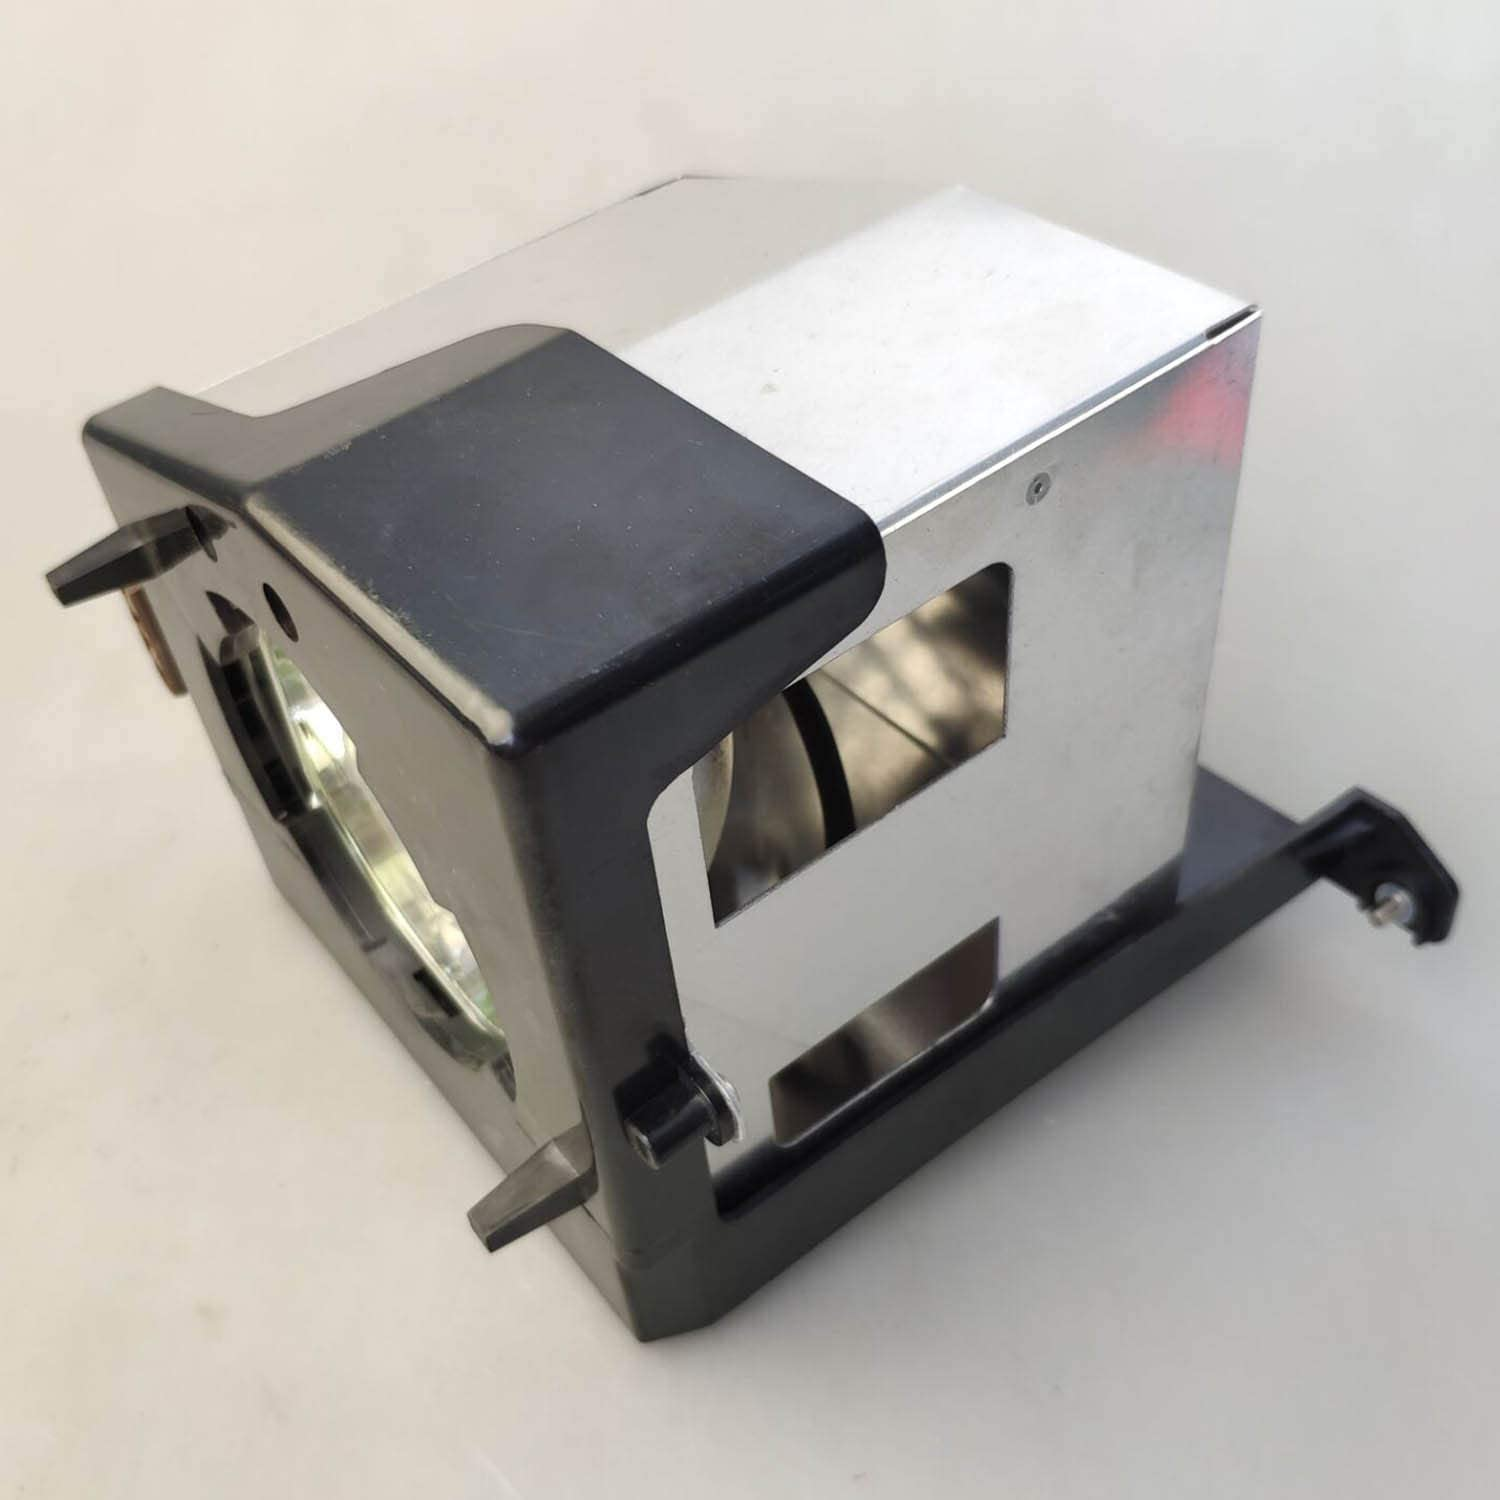 CTLAMP TB25-LMP 23311083A LPM-46WM48 Projector Lamp with Housing Replacement Compatible with Toshiba 46HM84 46HM94 46WM48